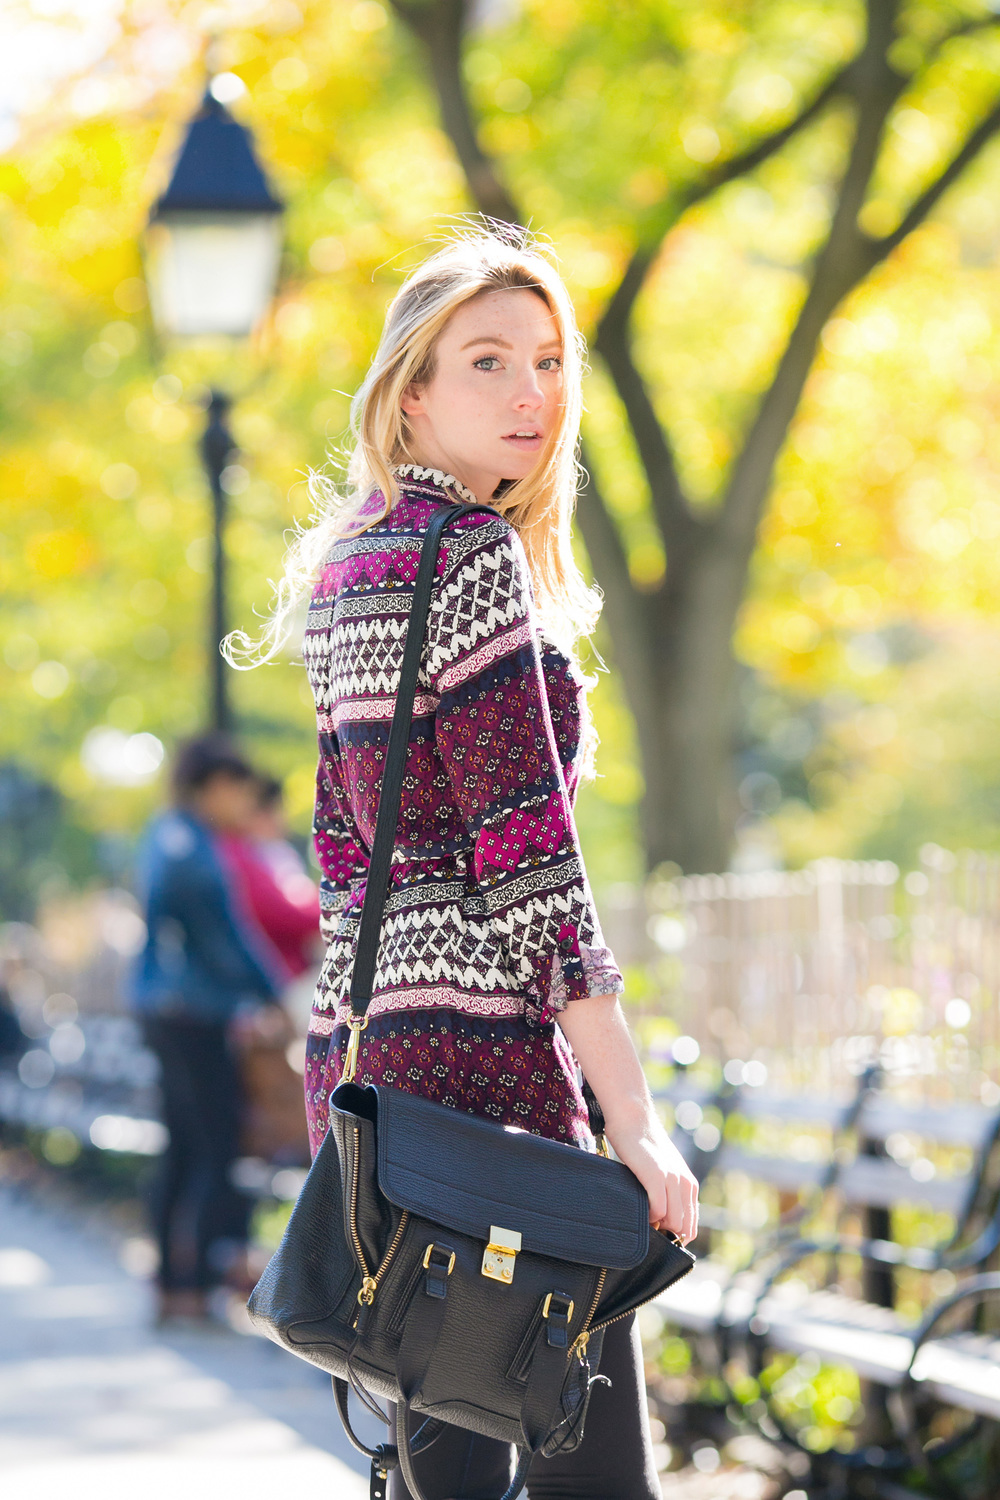 Fall Street Style (via model & blogger, Girl x Garment)